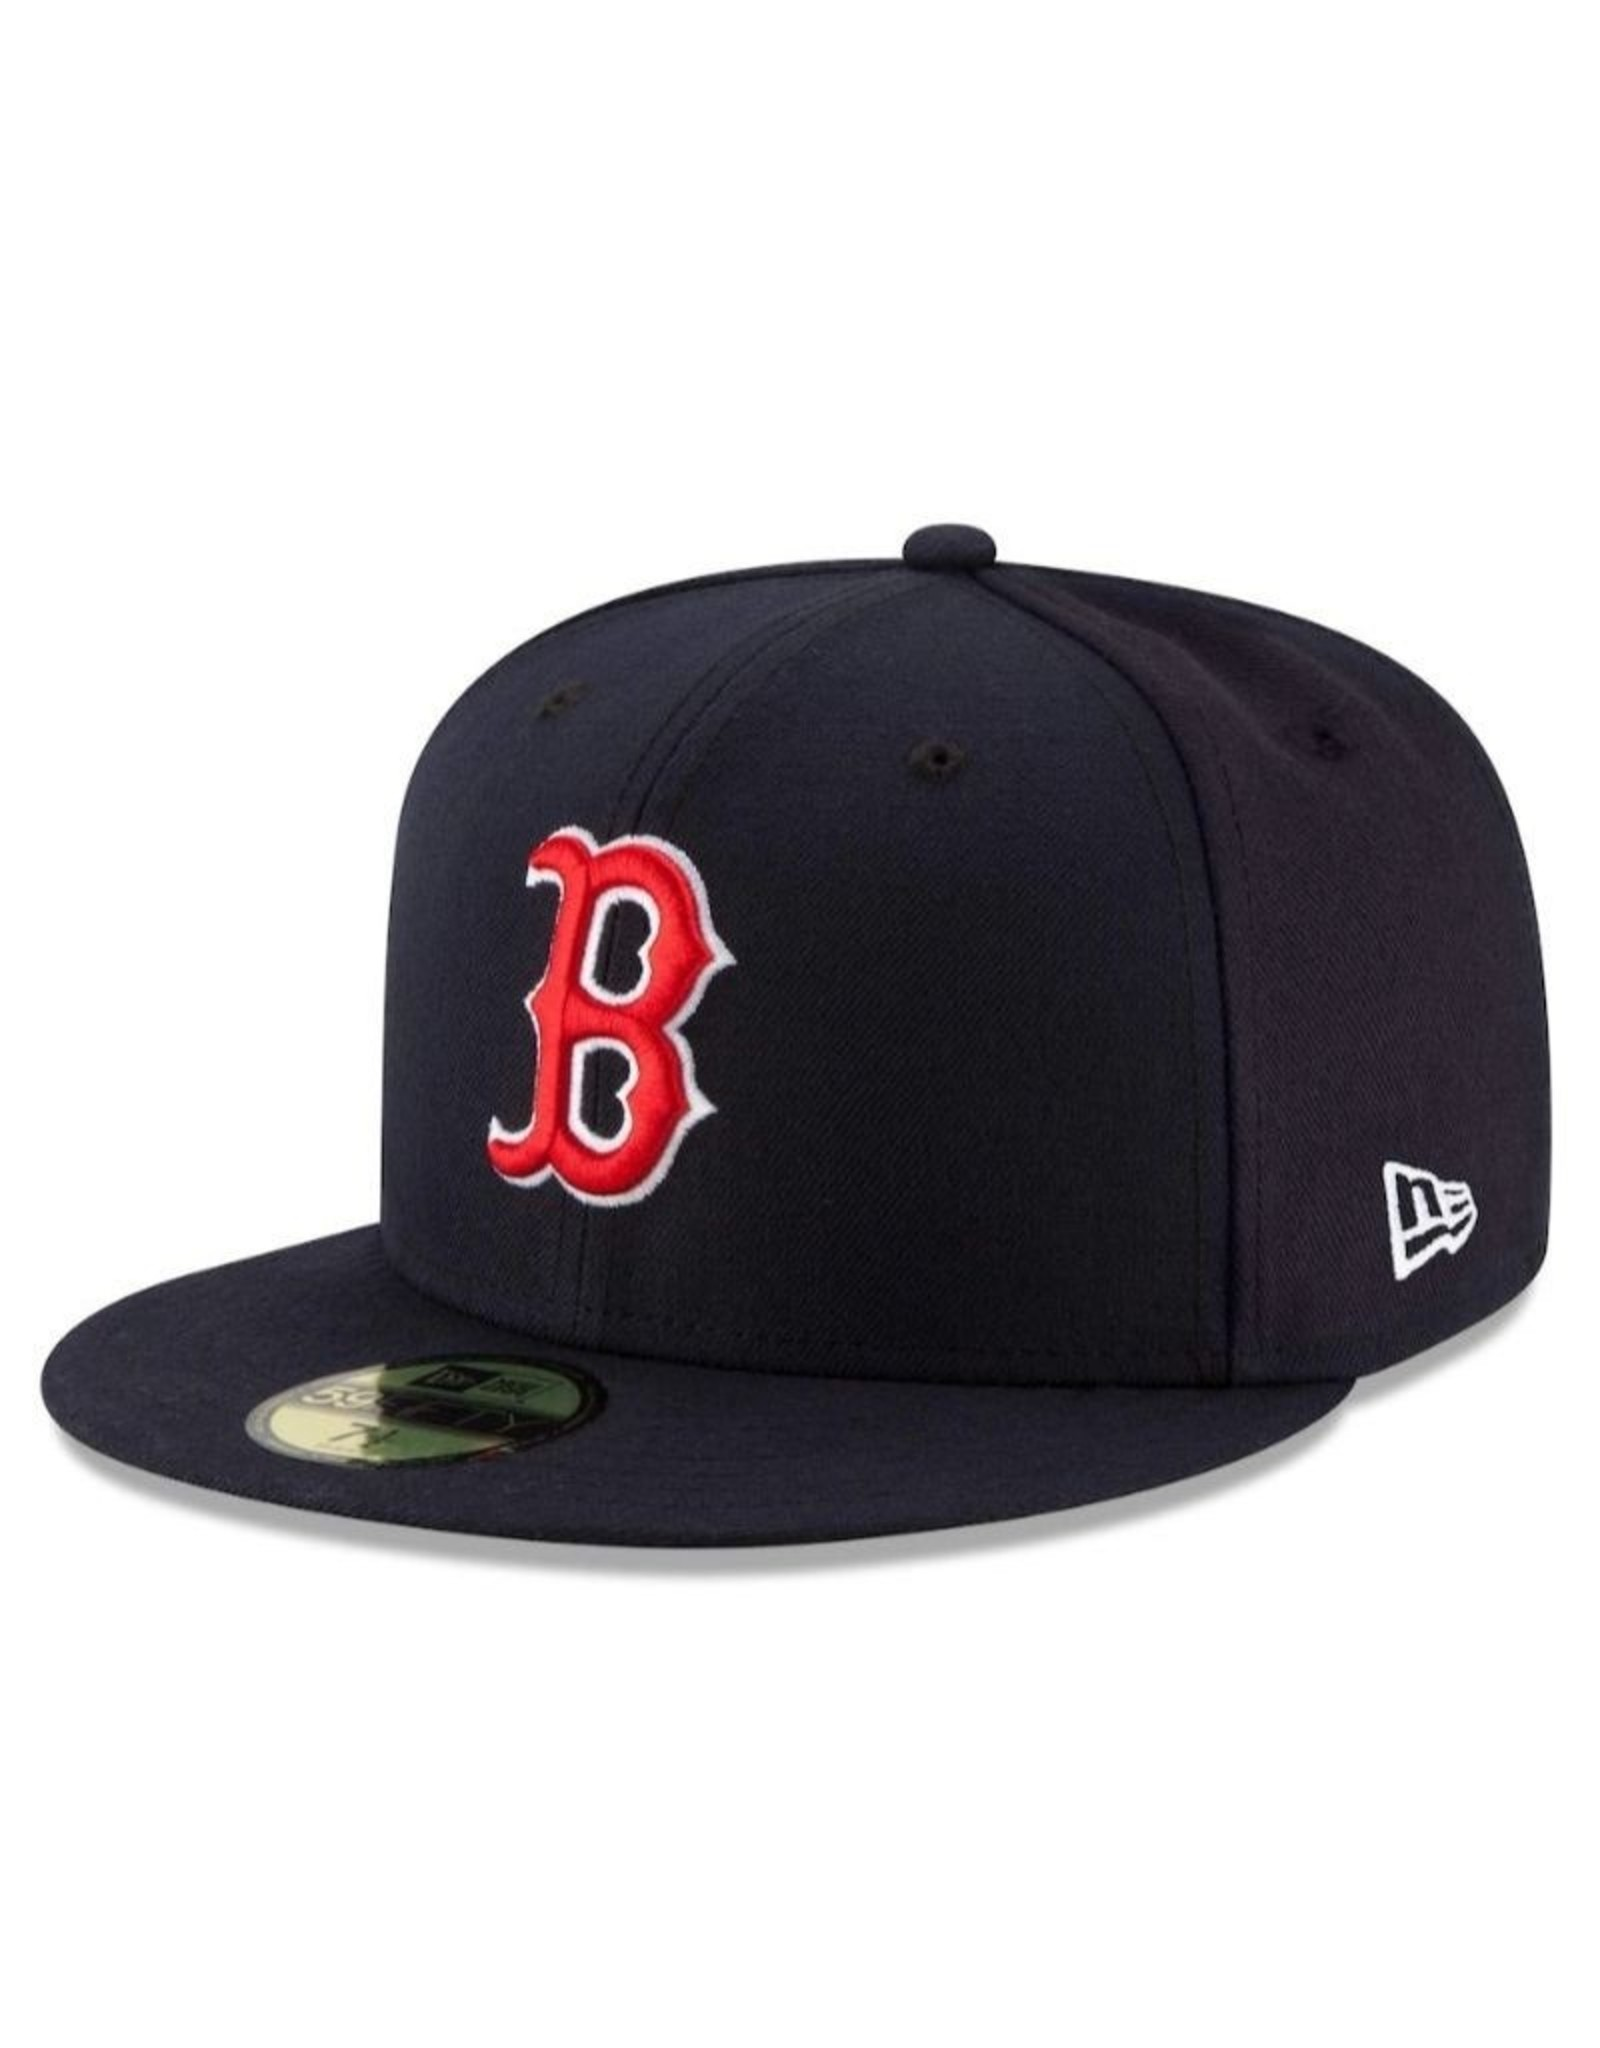 New Era On-Field Authentic 59FIFTY Home Hat Boston Red Sox Navy